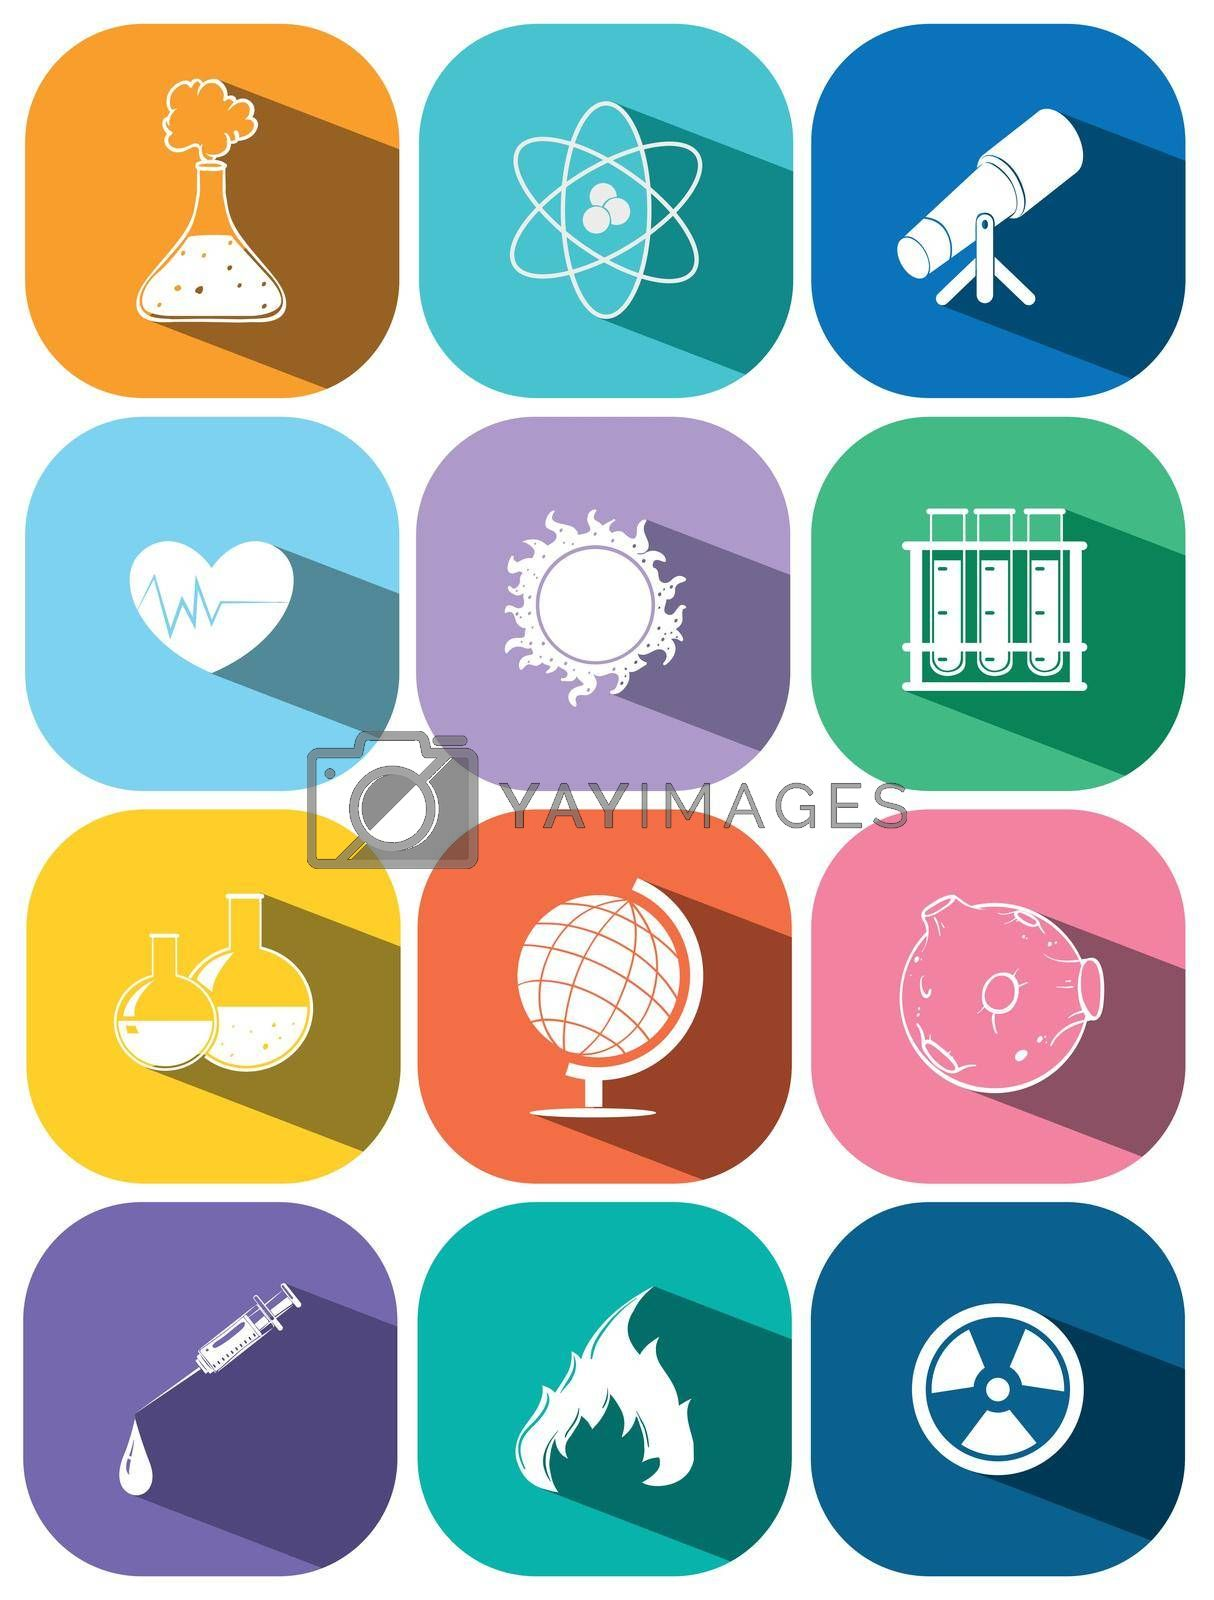 Royalty free image of Icons for technology and science by iimages